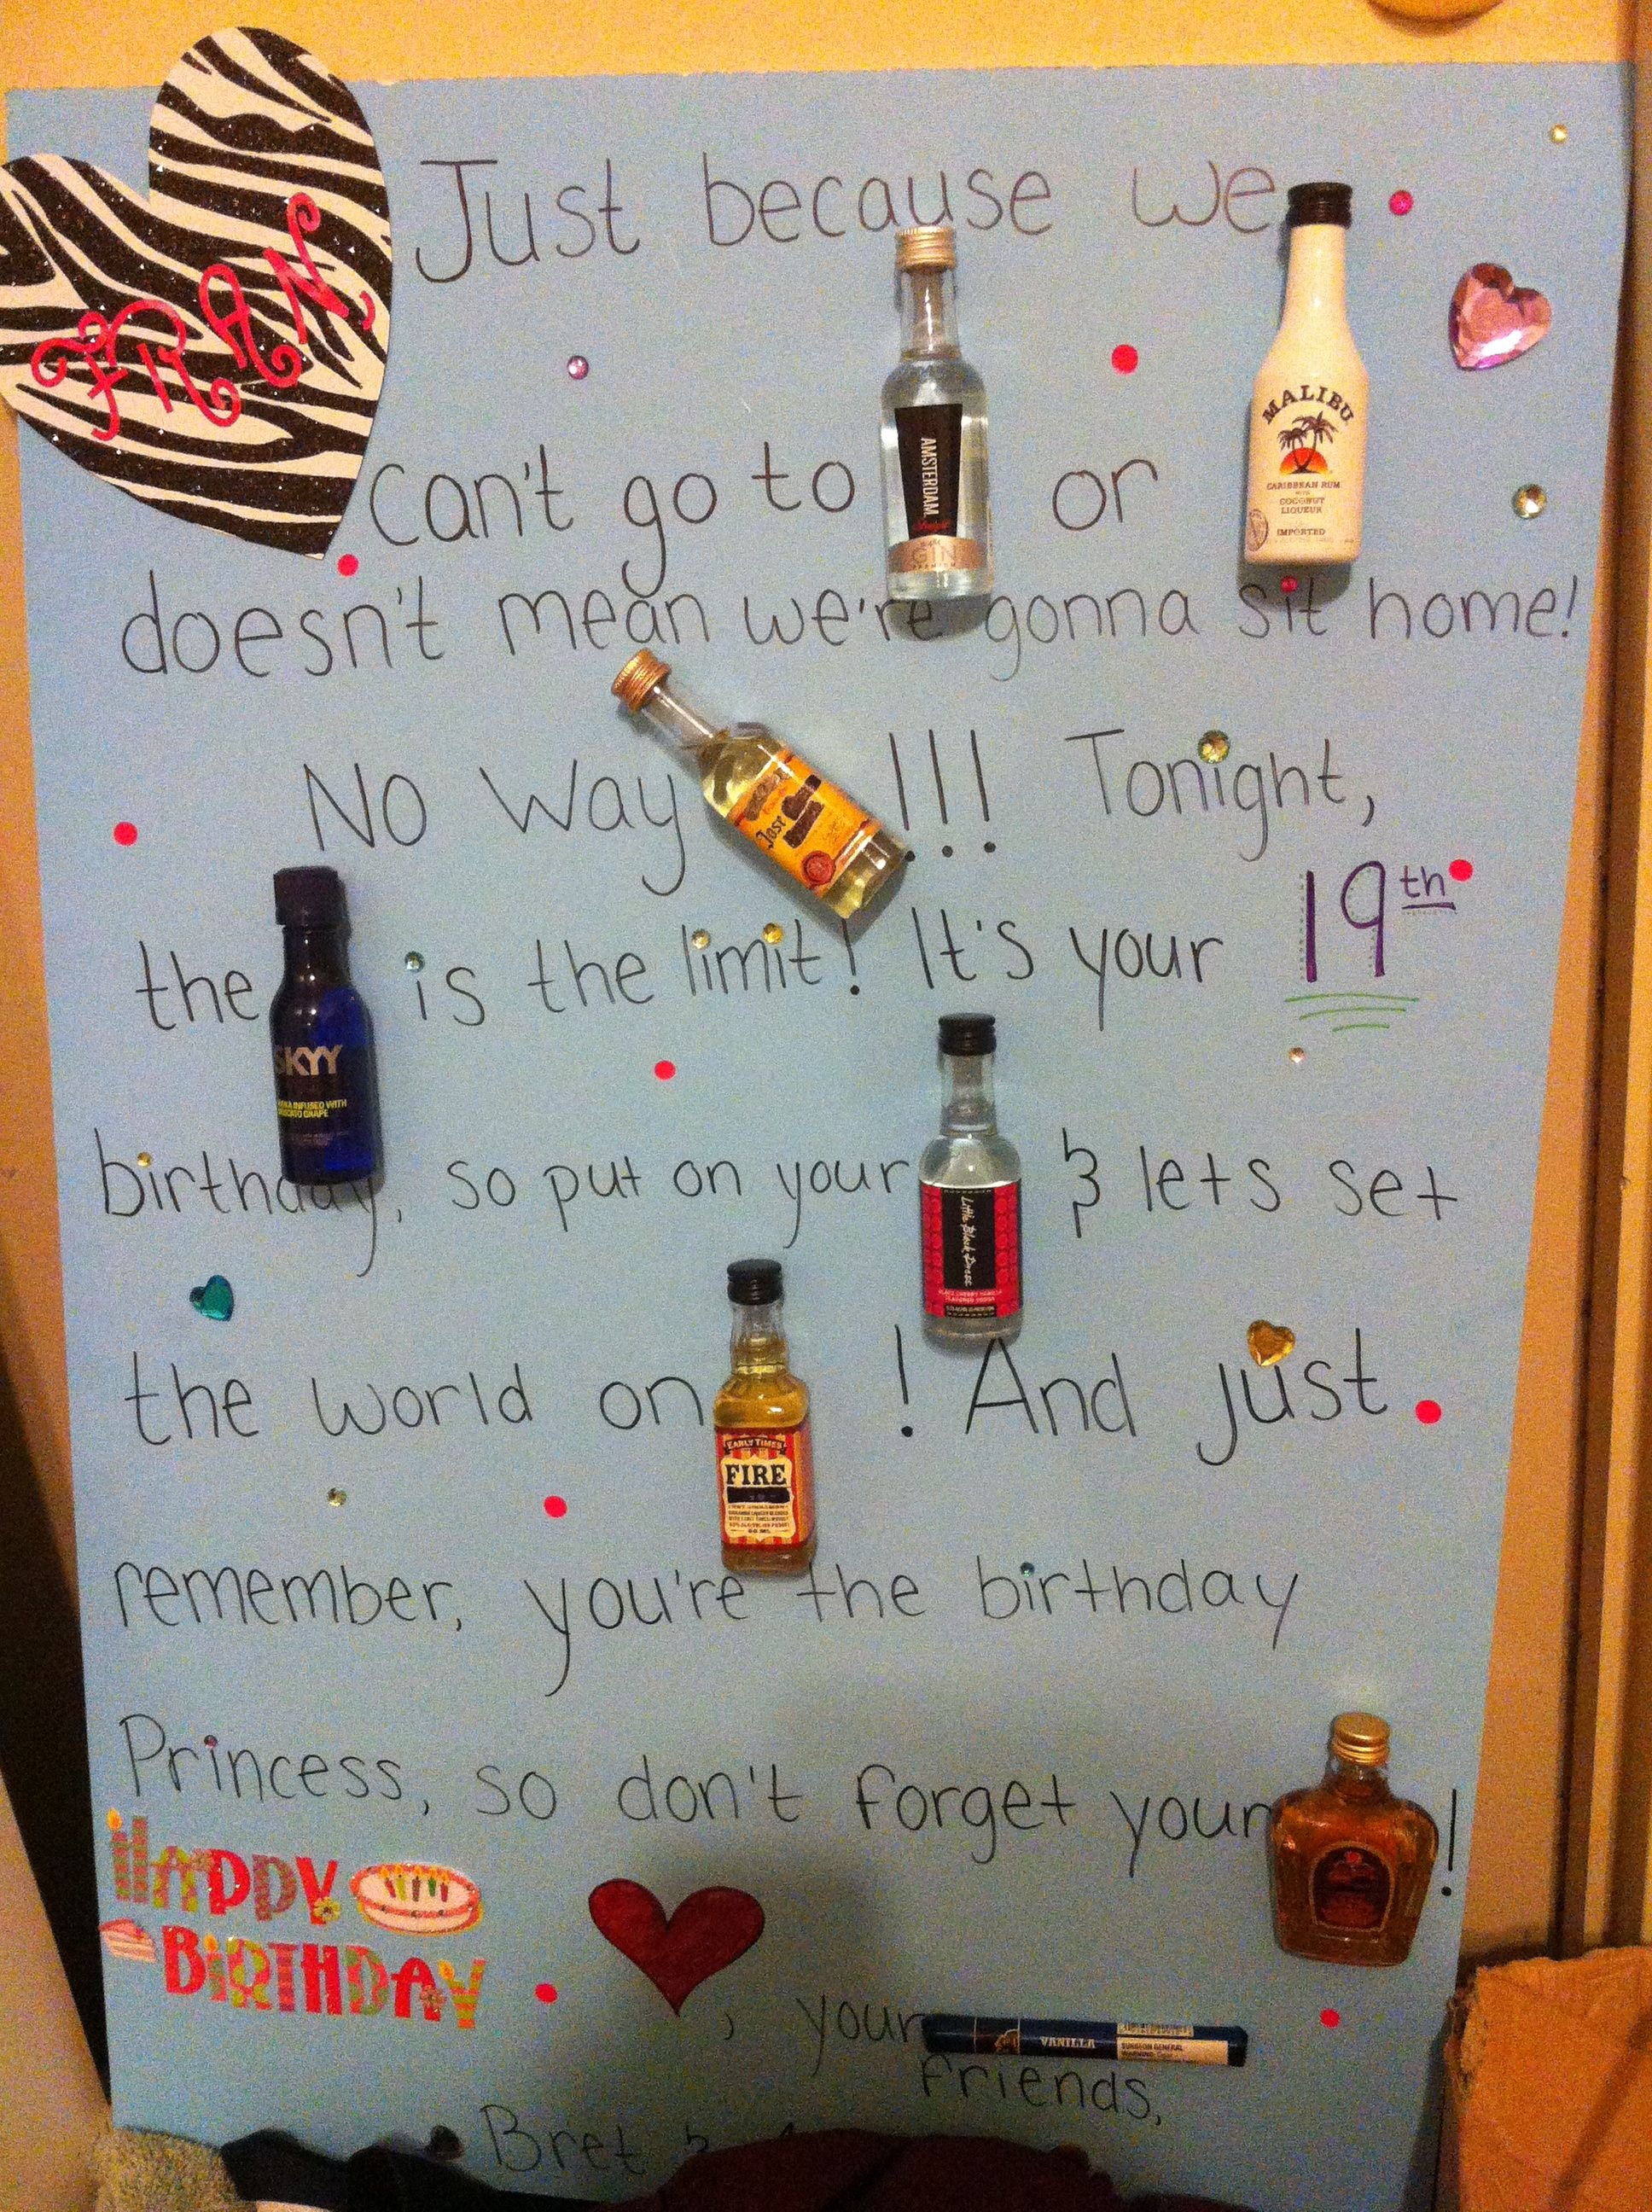 Mad Libs Birthday Card Mini Alcohol Bottles Just Because We Cant Go To NEW AMSTERDAM Doesnt Mean Were Gonna Sit At Home